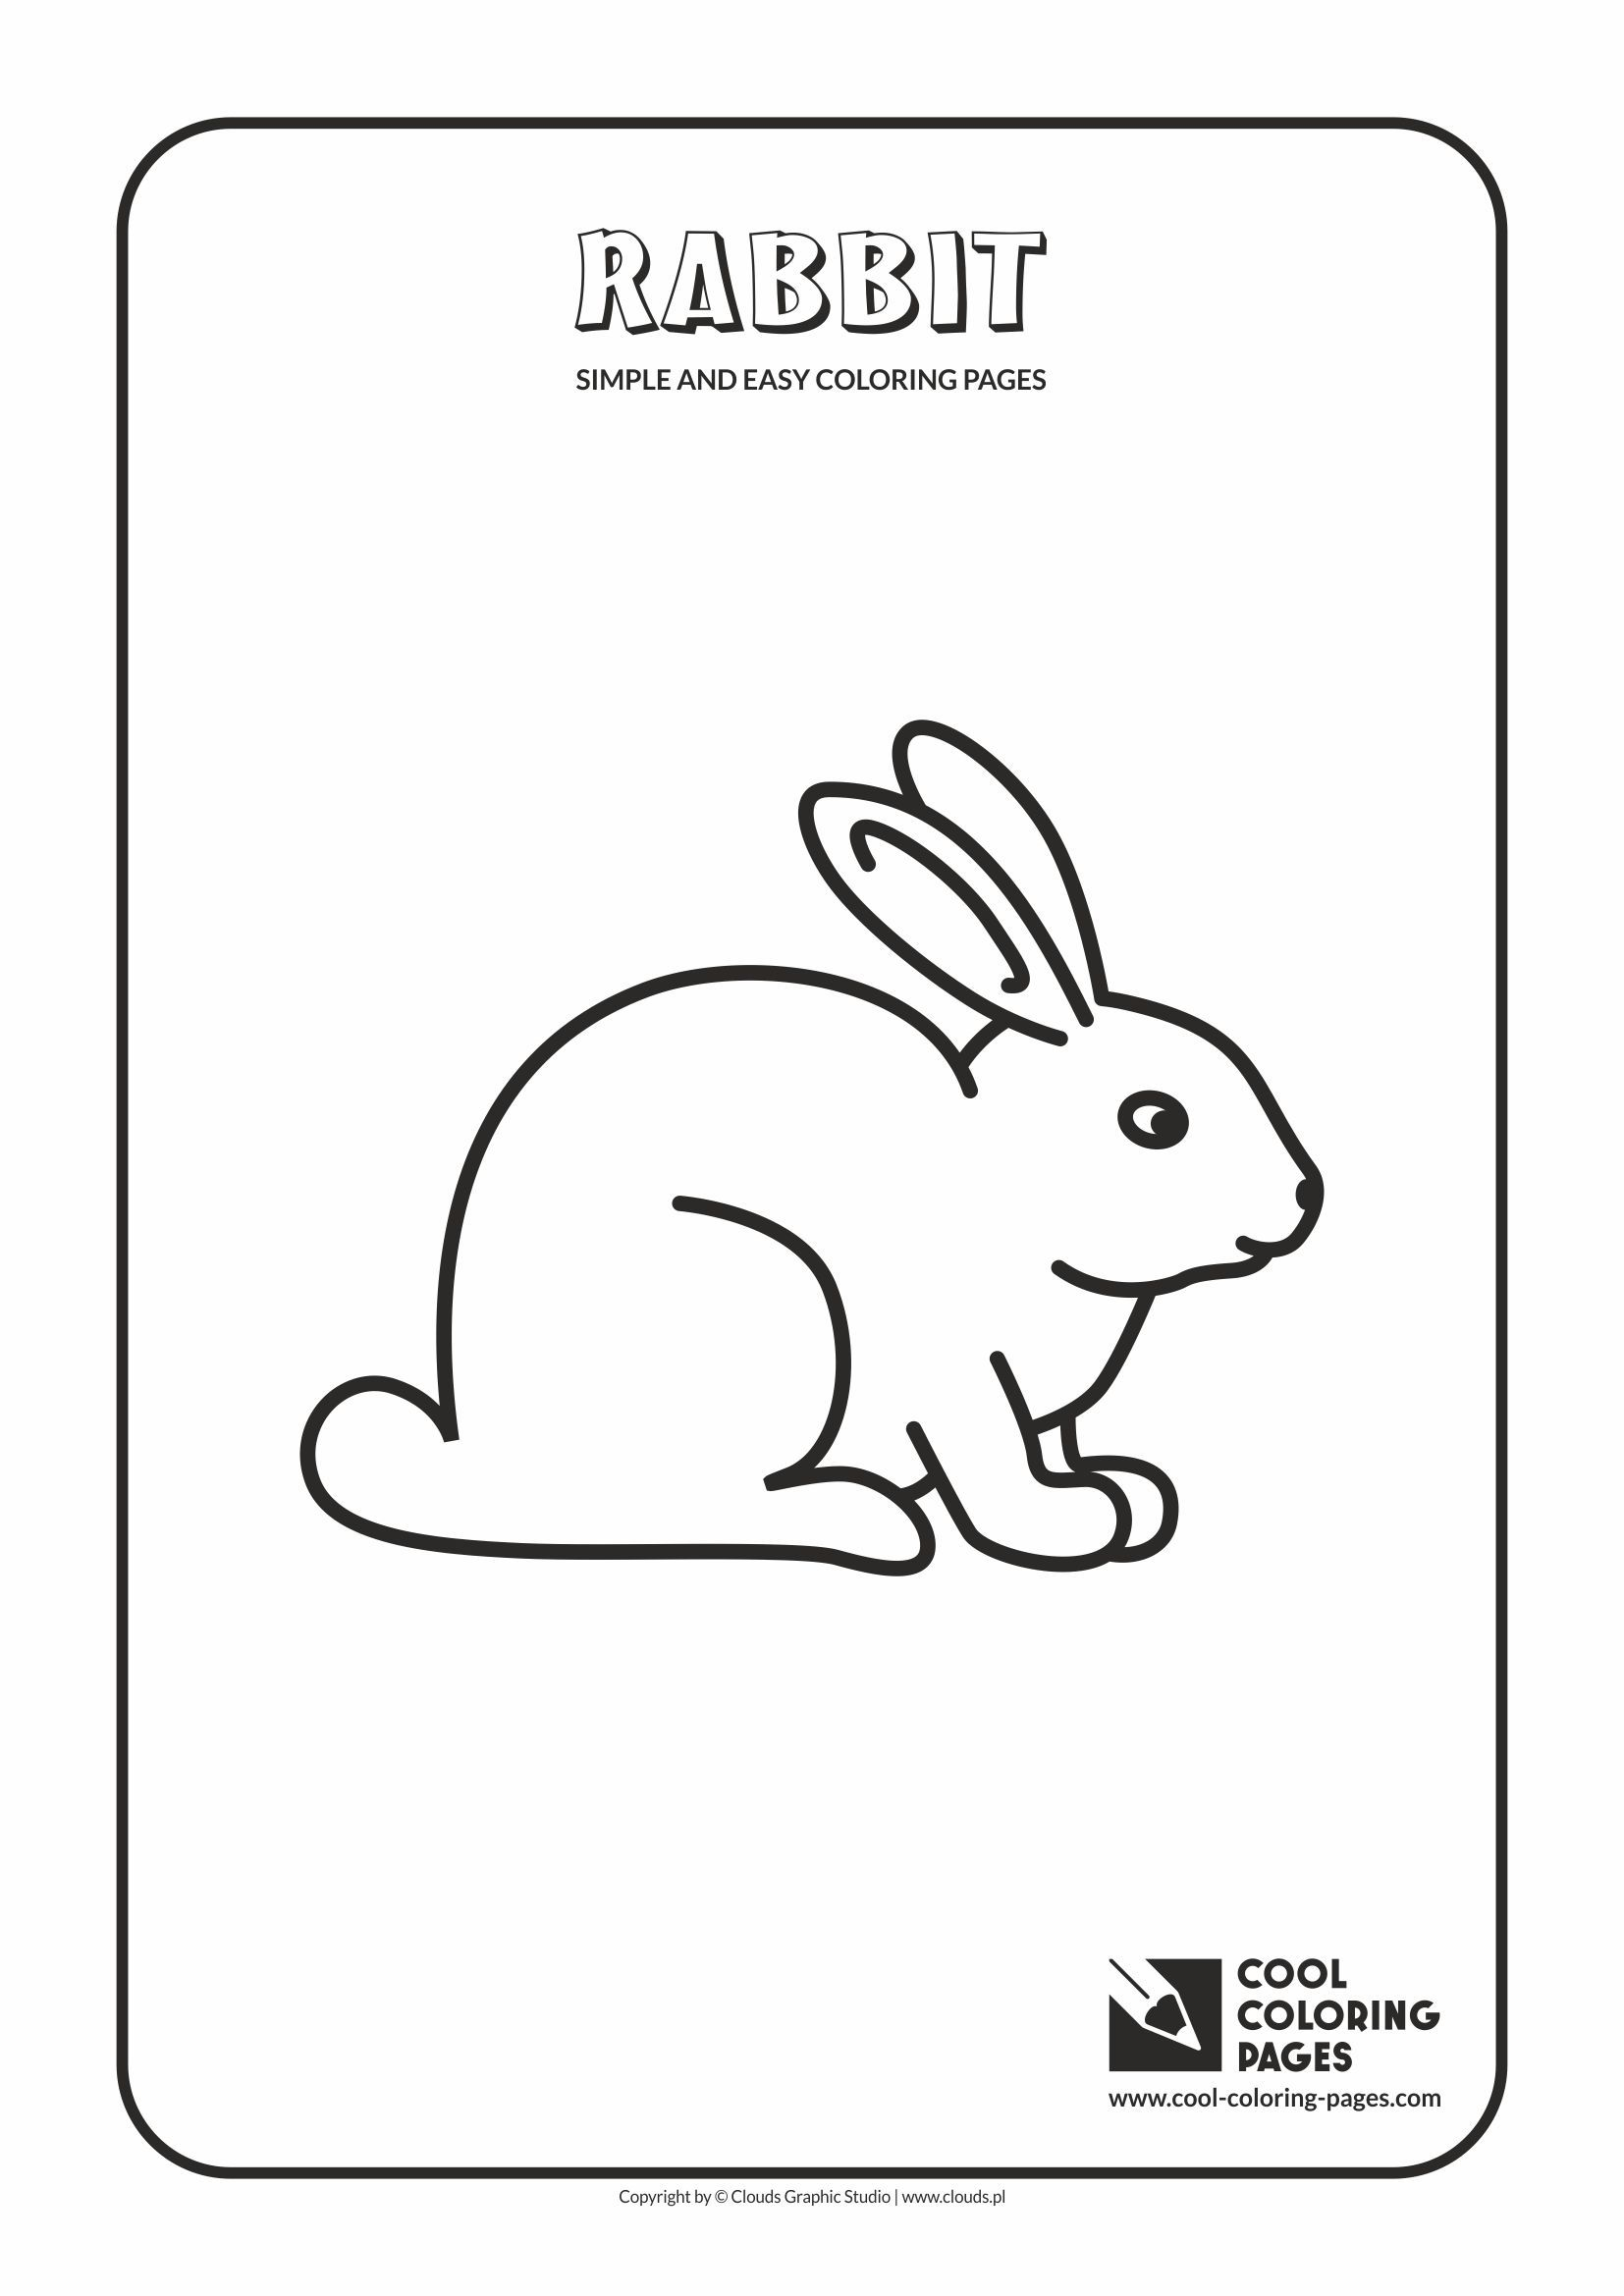 Simple And Easy Coloring Pages For Toddlers Rabbit Easy Coloring Pages Animal Cutouts Coloring Pages